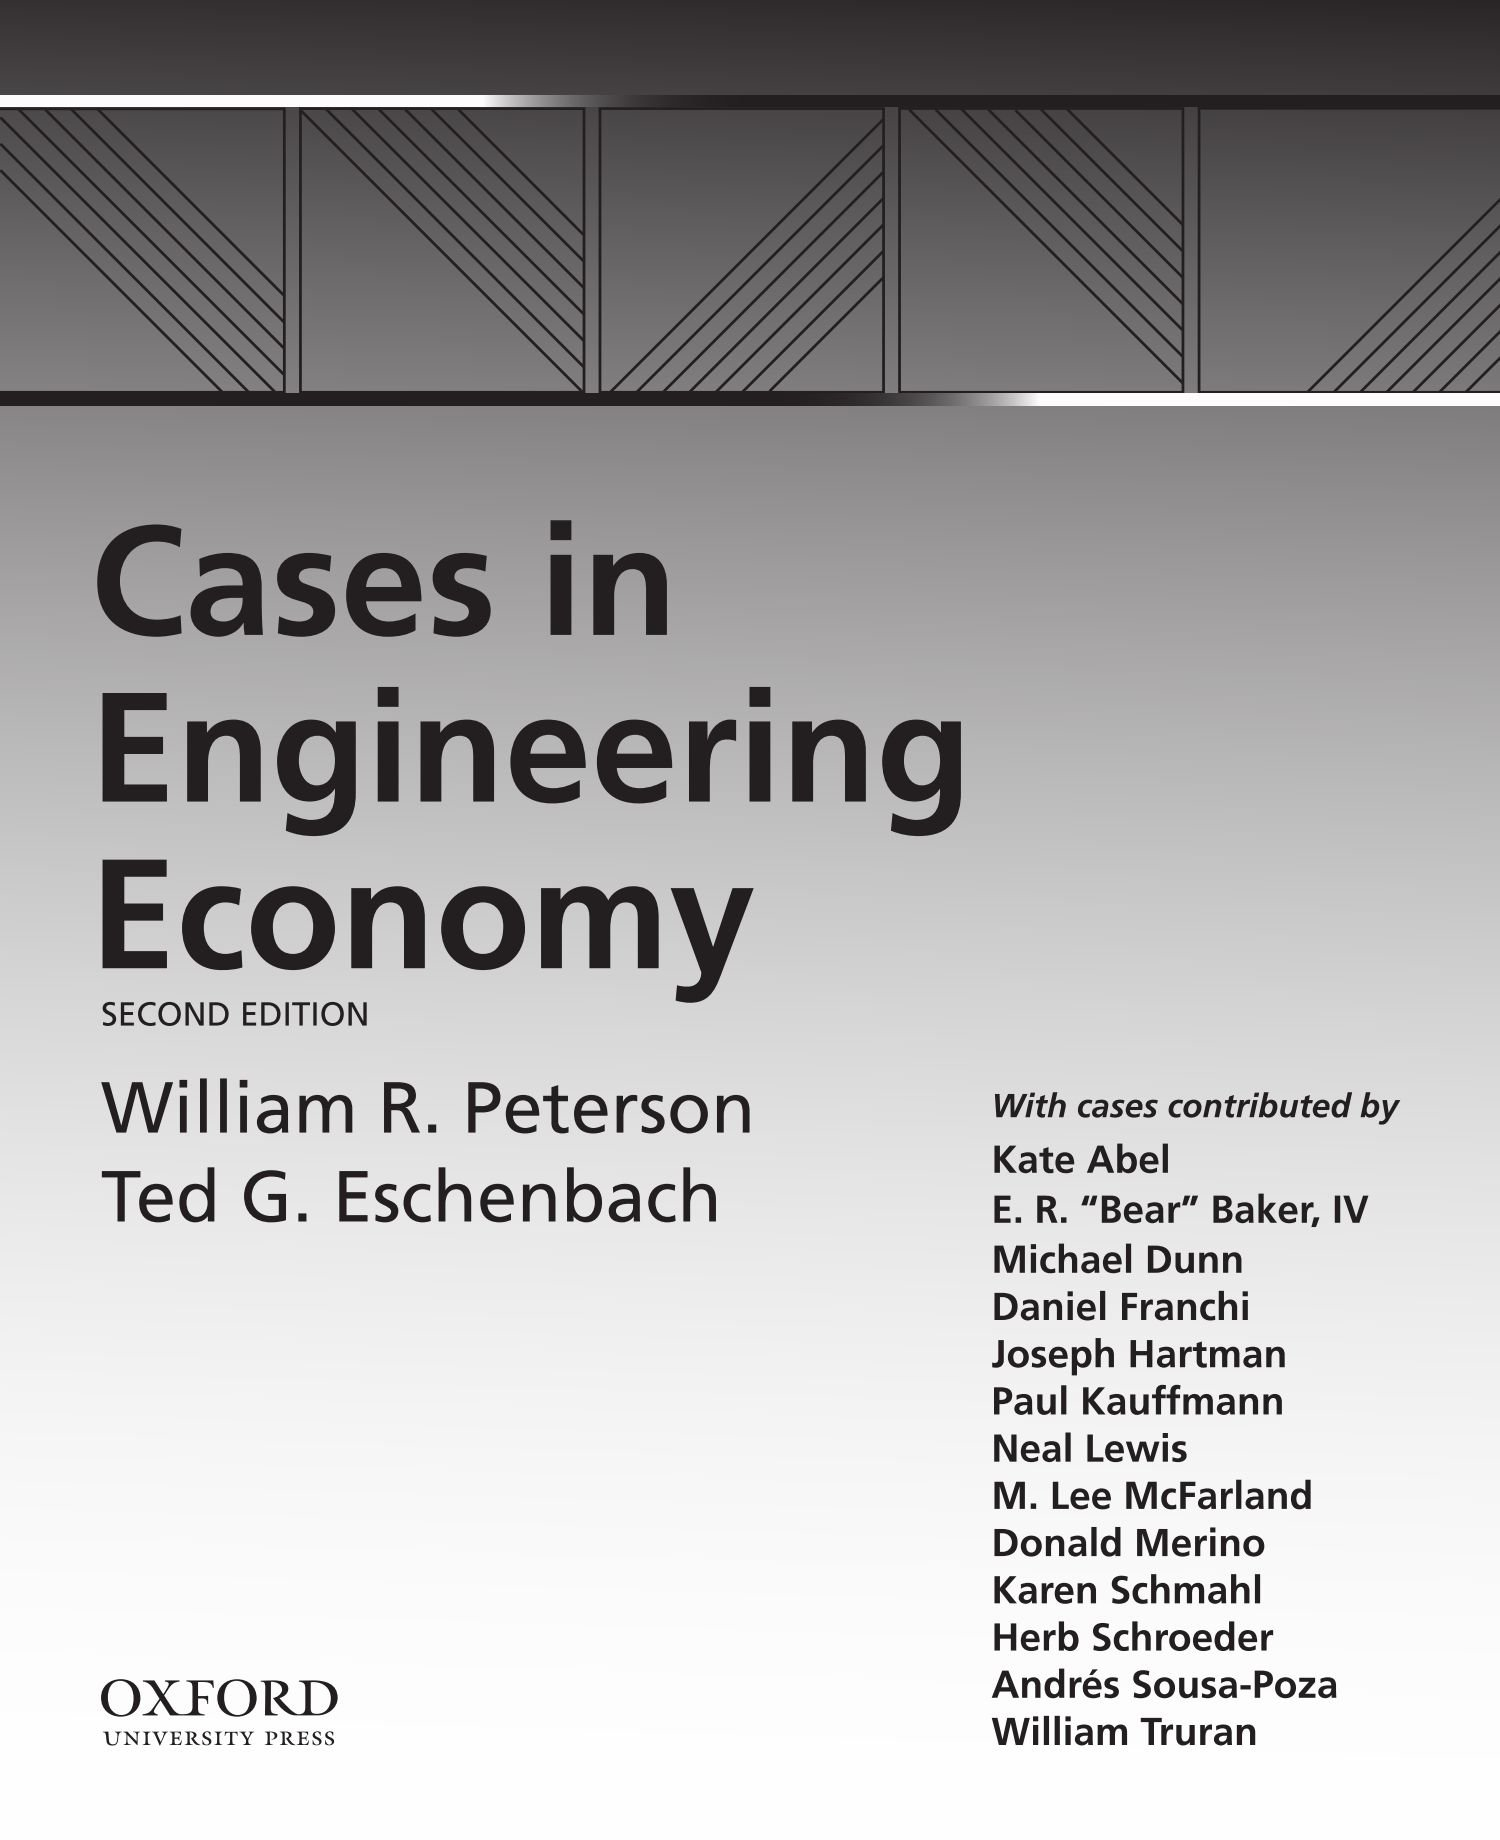 Cases in Engineering Economy by Oxford University Press